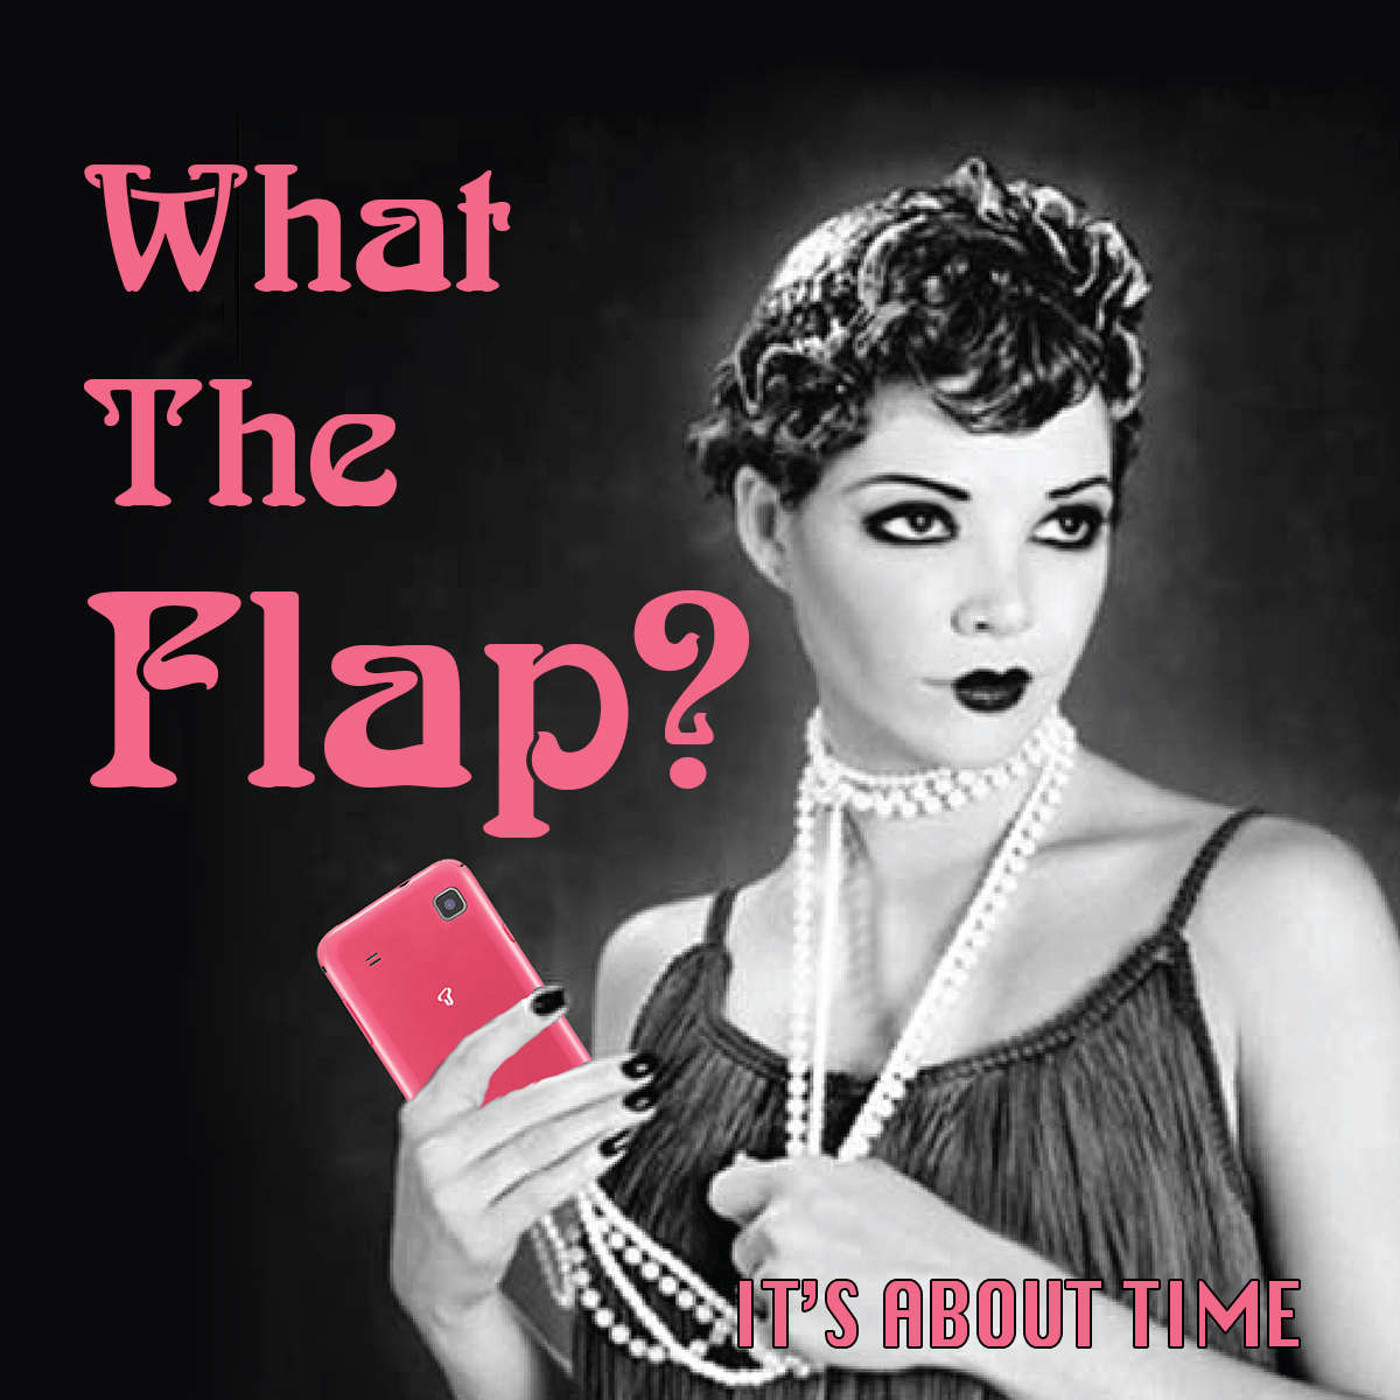 S01E12 - What the Flap? - A trip to the Roaring 20's